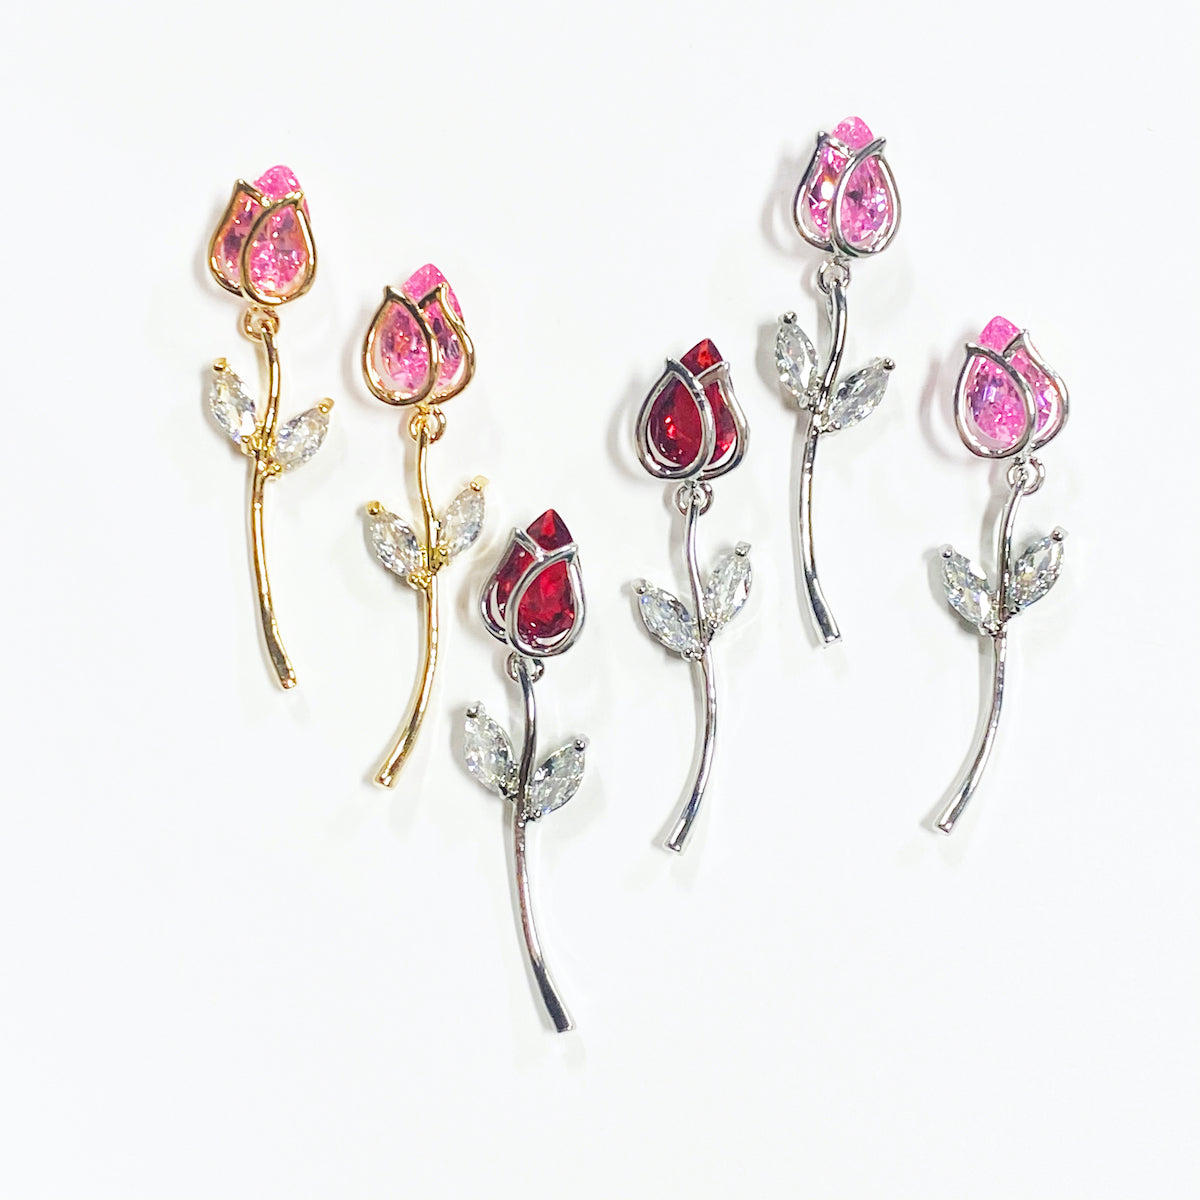 ROSE CRYSTAL EARRINGS